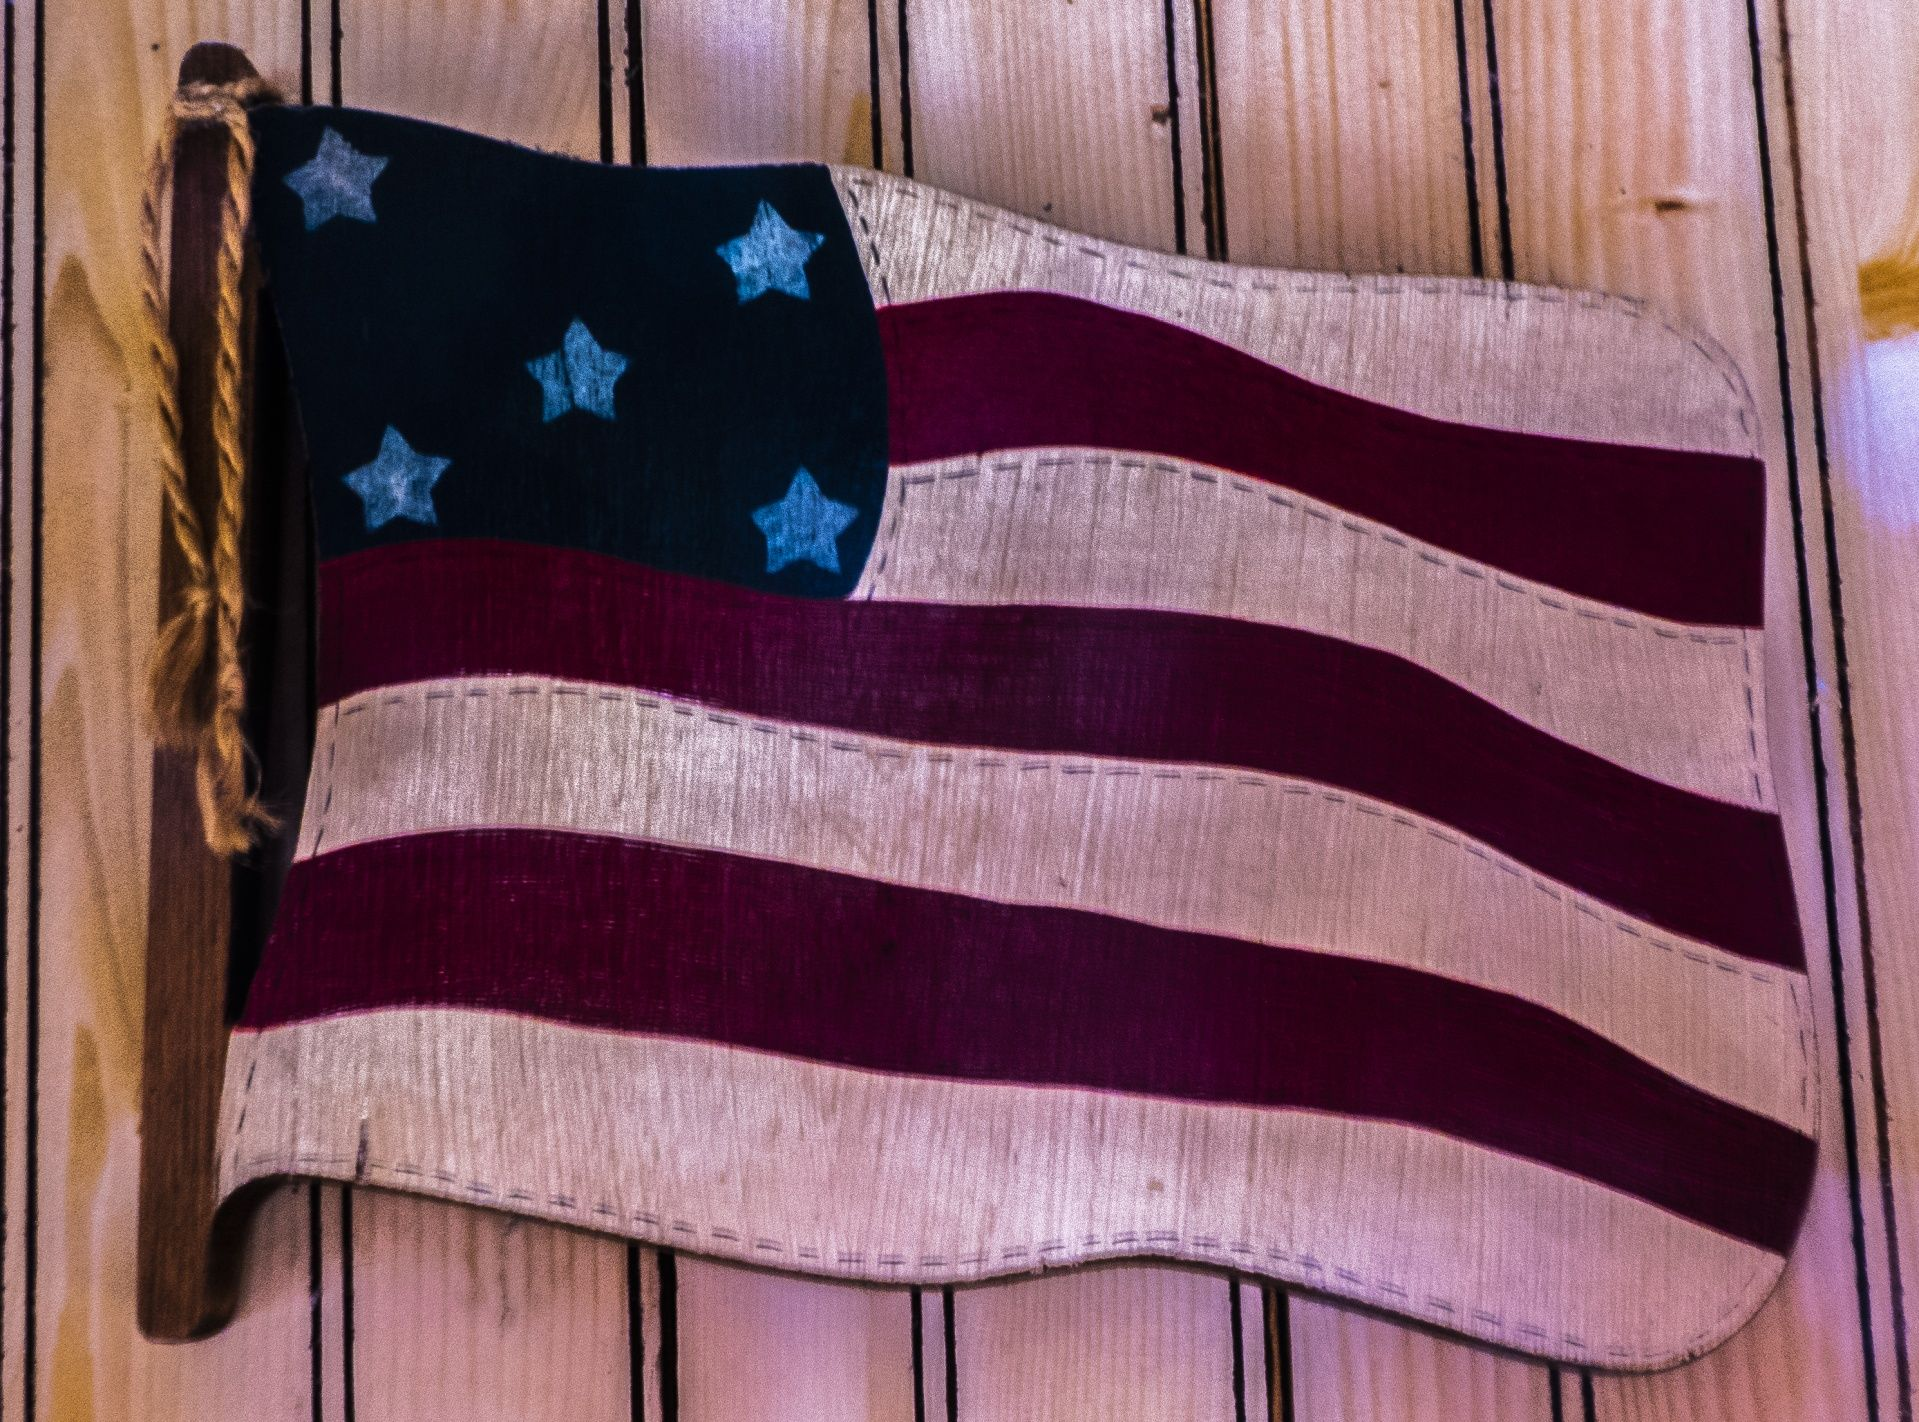 Wood Flag Decoration For Background Diy Projects Public Domain Picture Use For Your   Blog Post Book Or Other Project